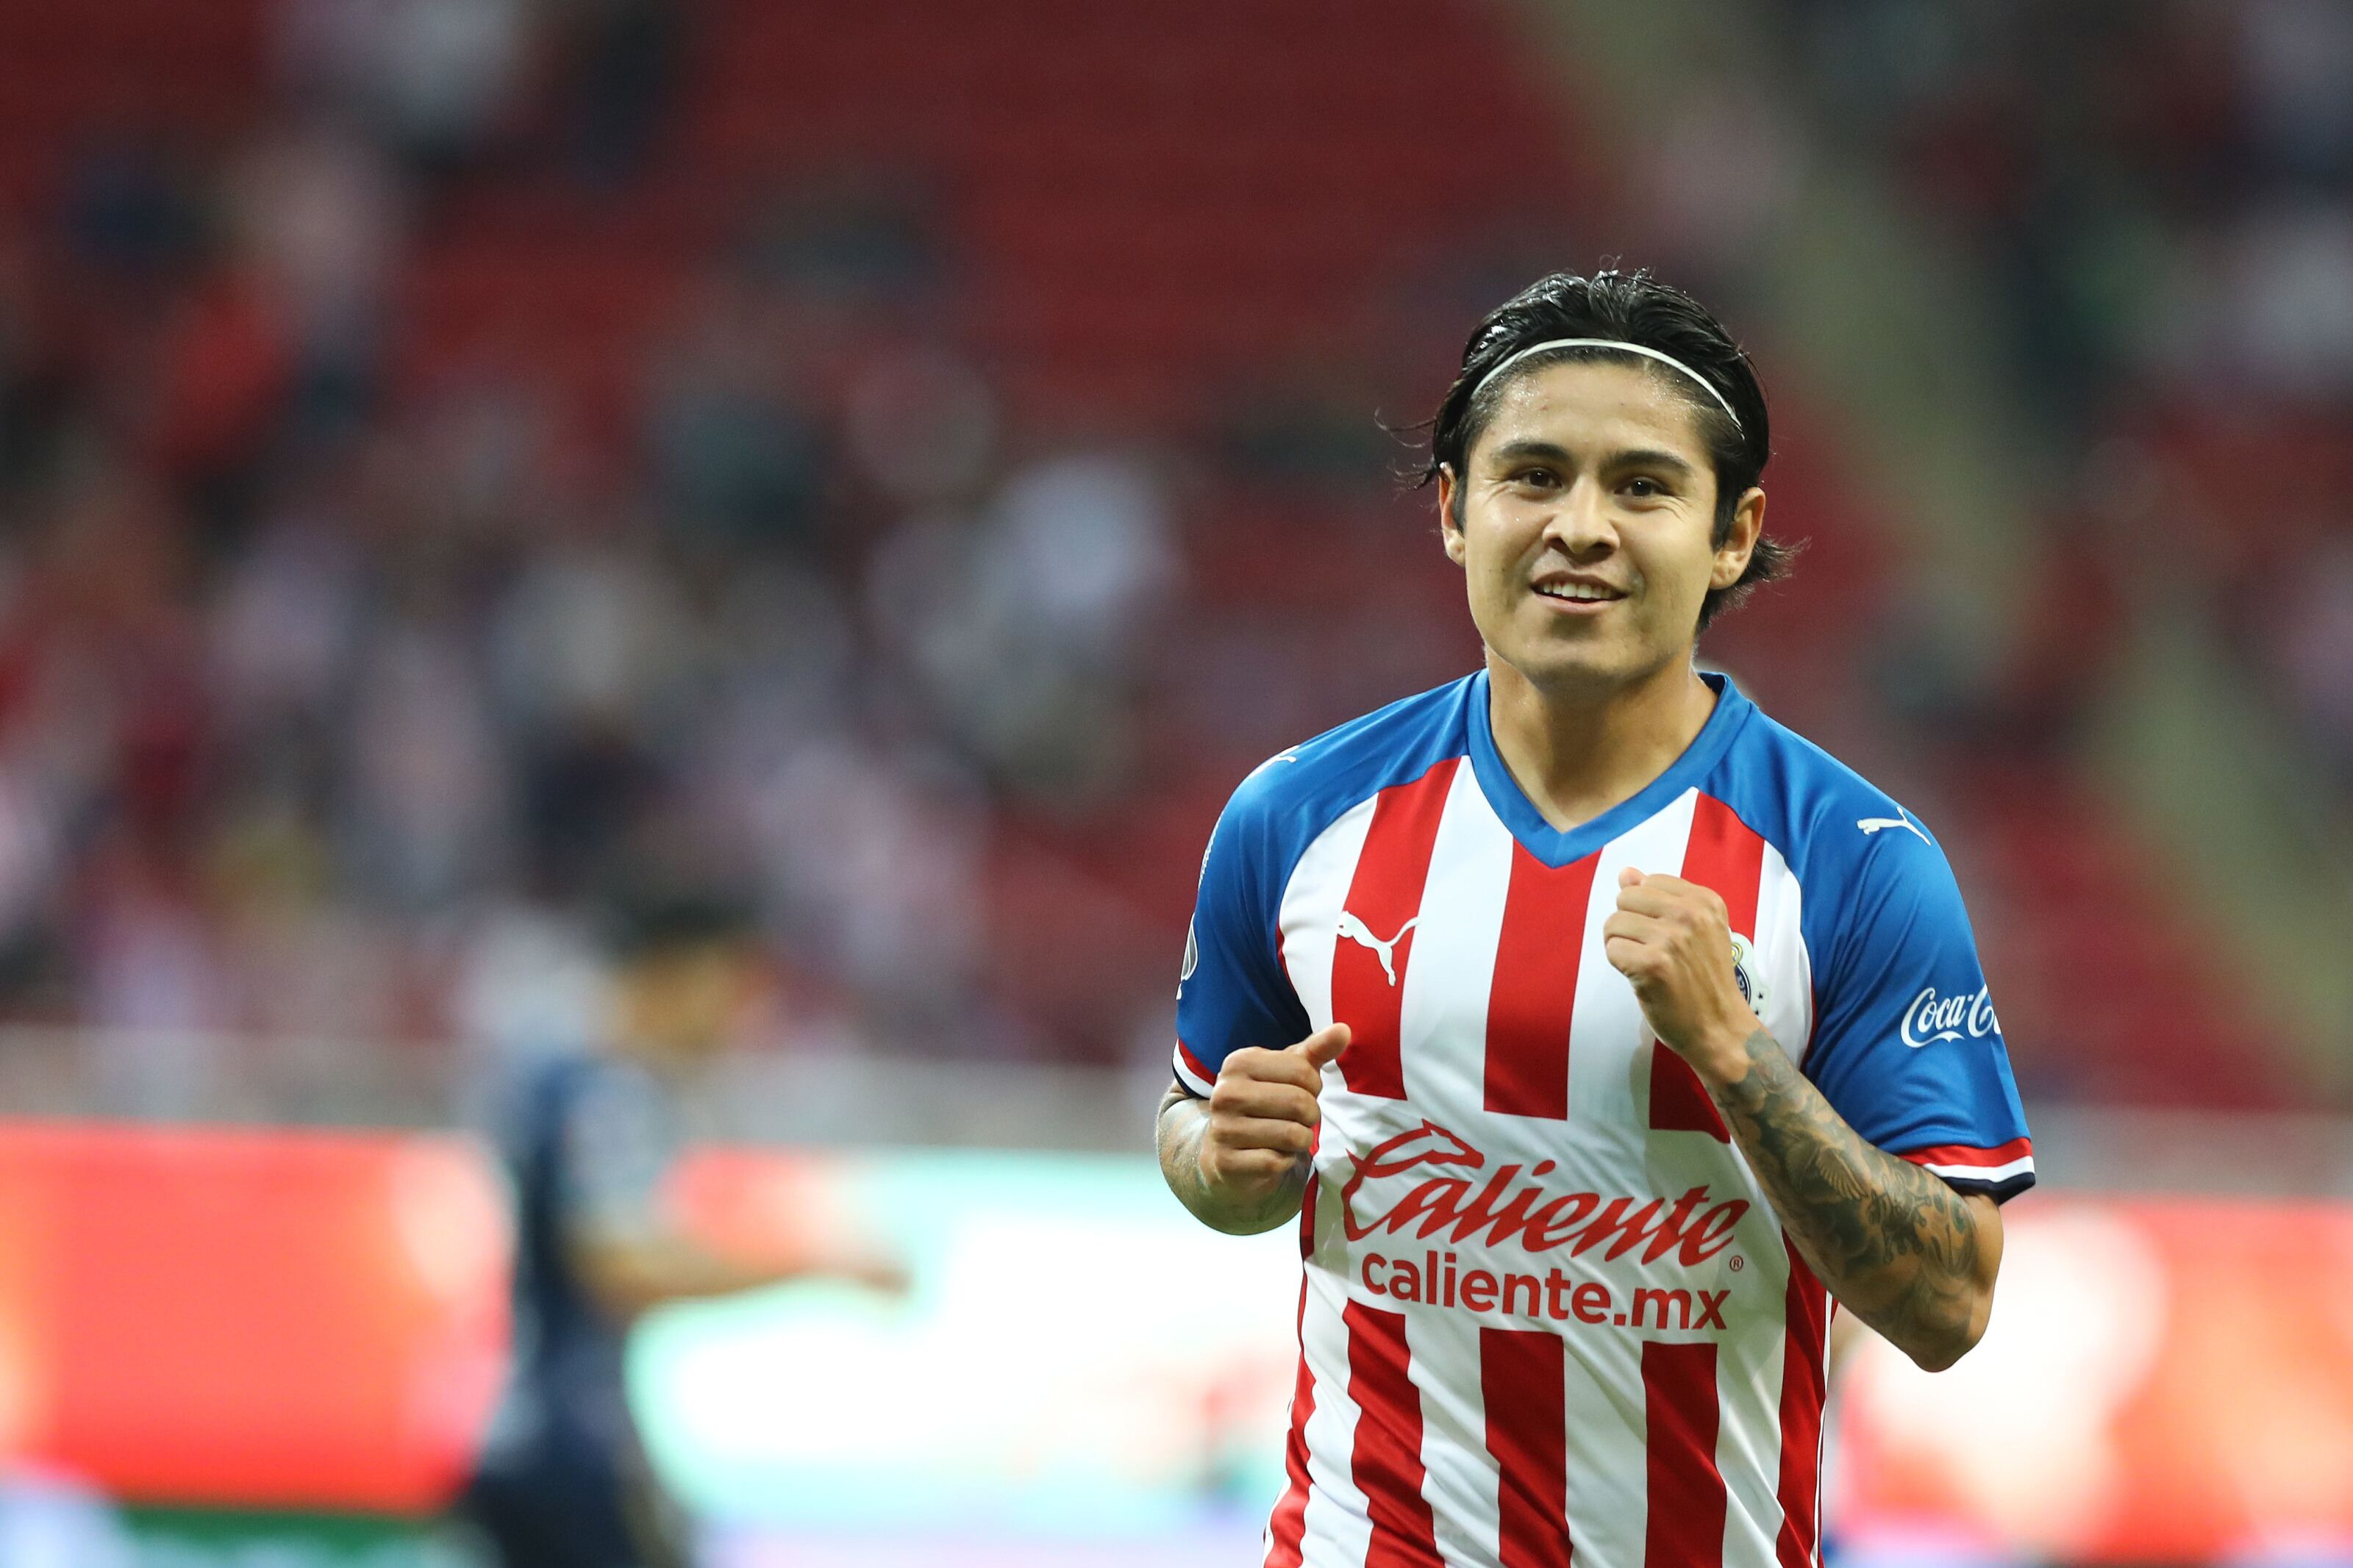 'Chofis' leads Chivas to dominant win over San Luis in Matchday 4